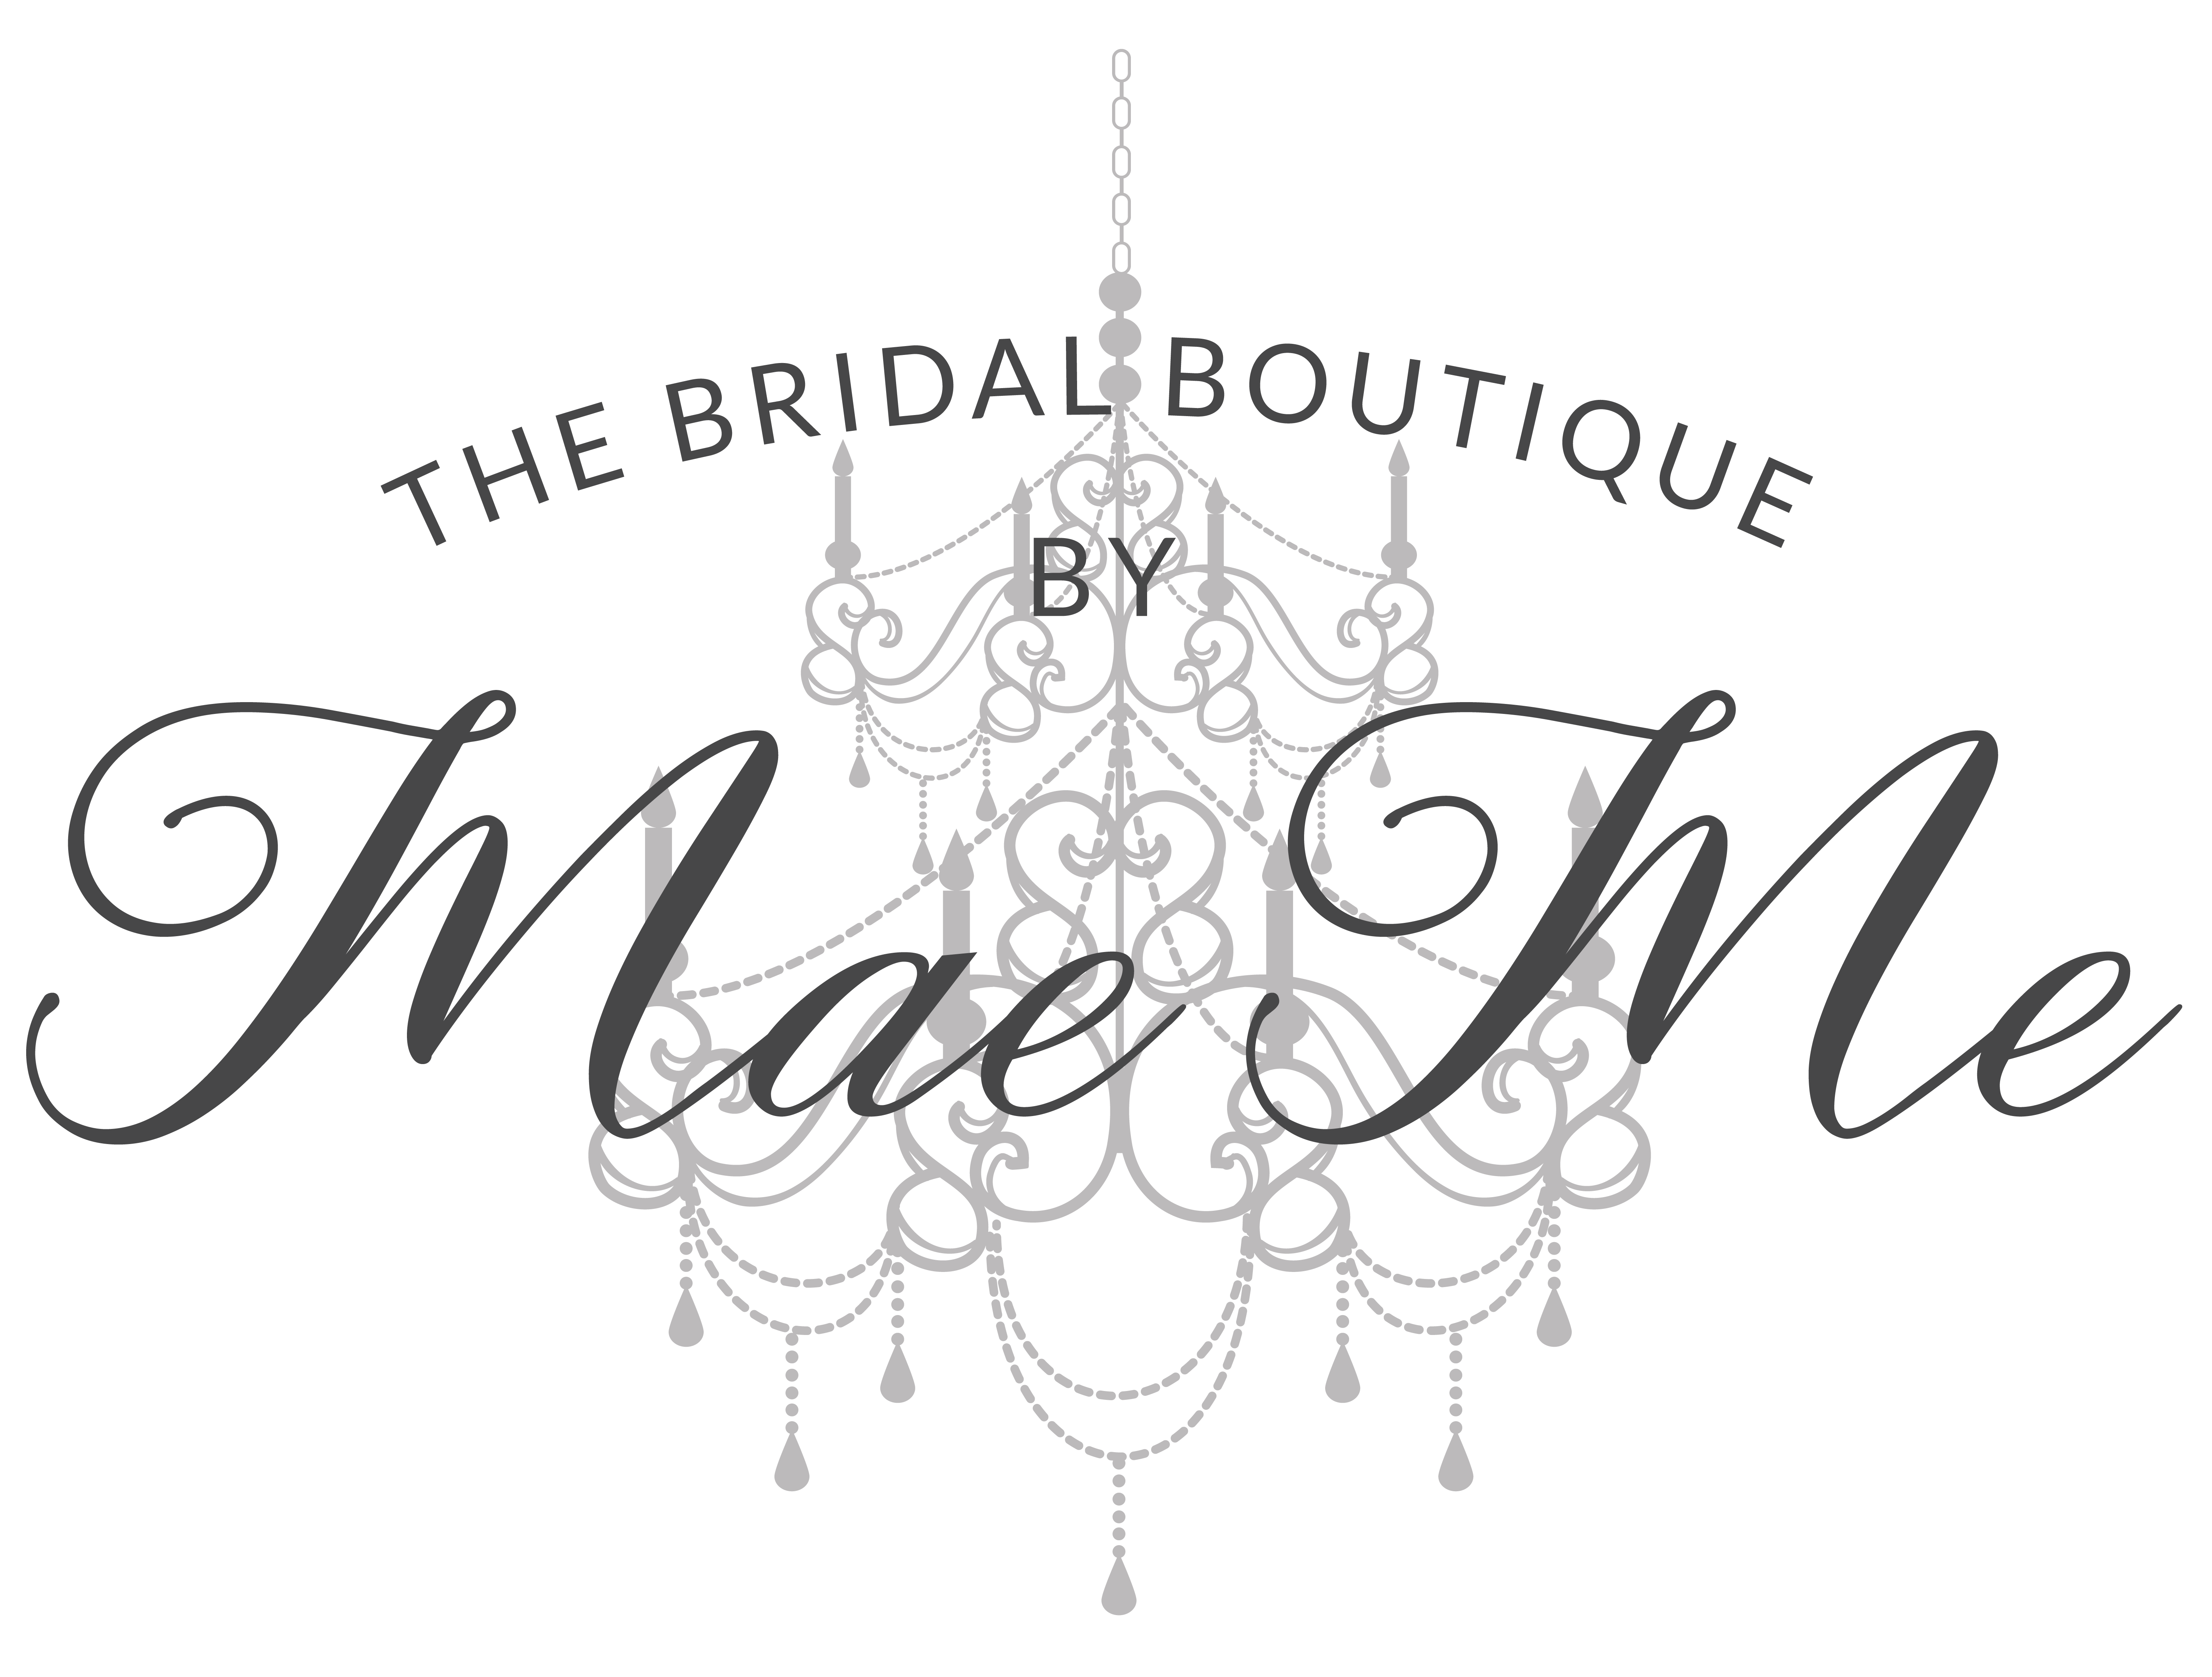 Louisiana drawing couple. The bridal boutique by